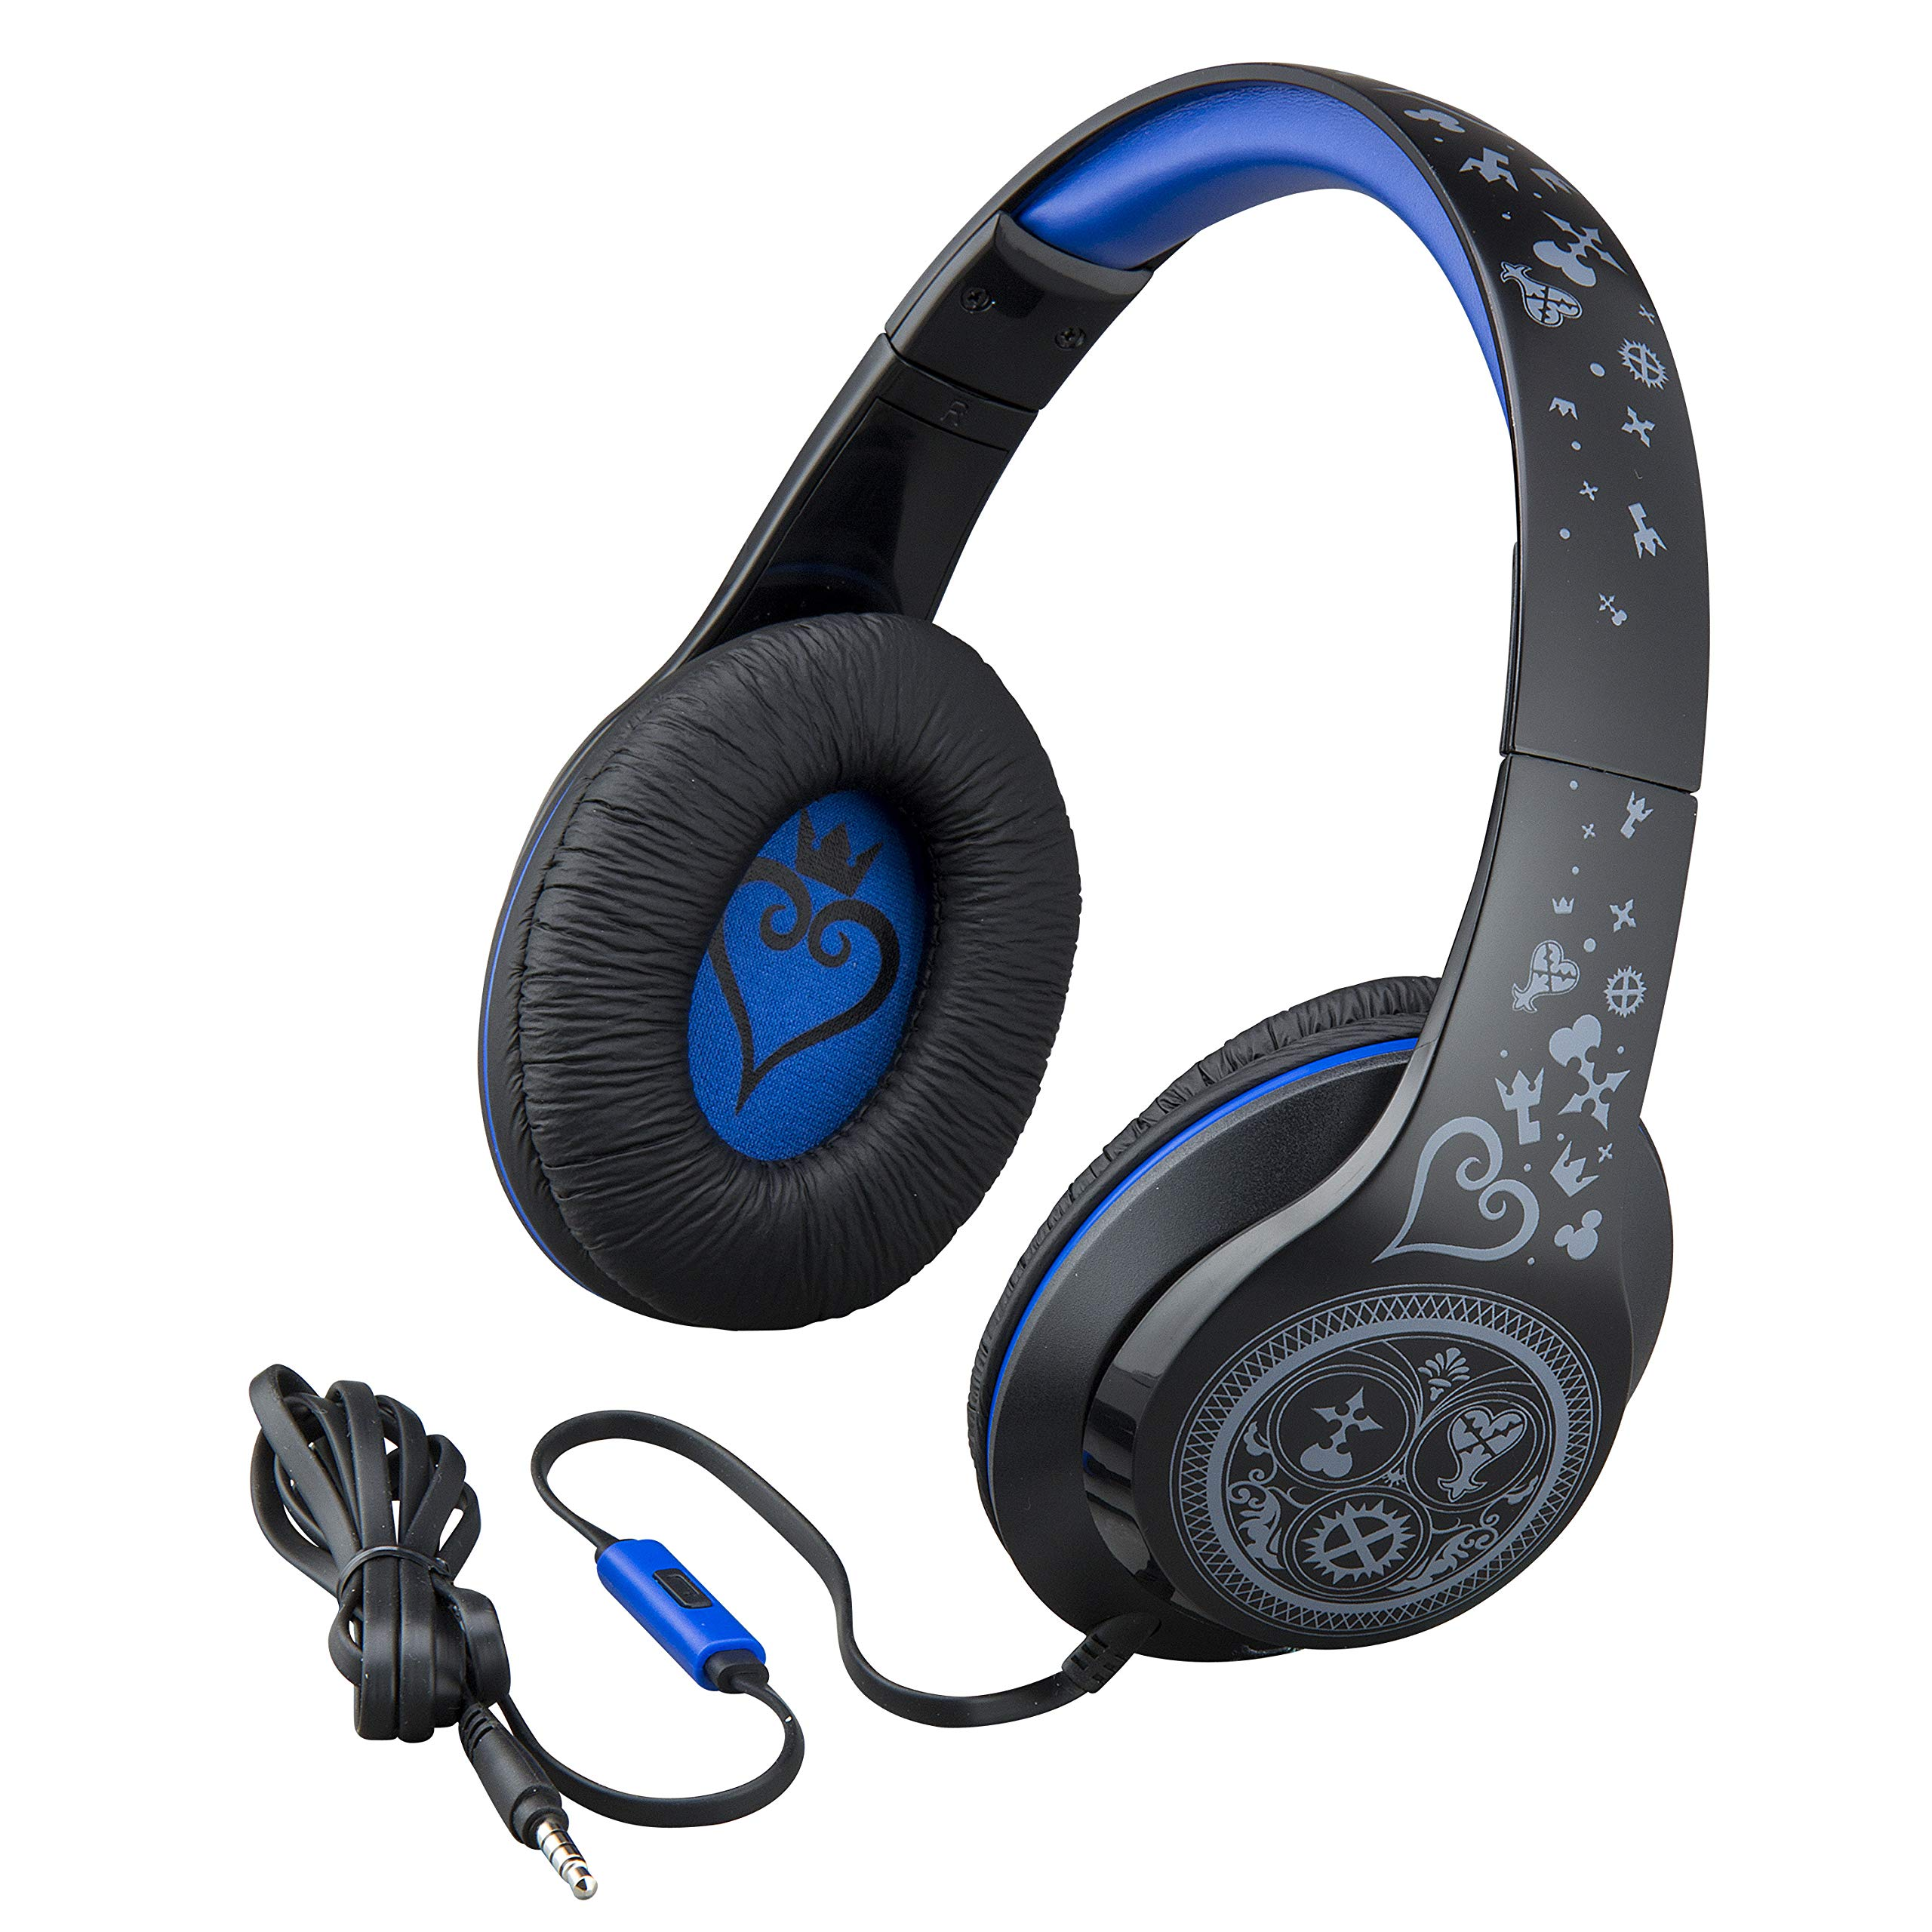 Kingdom Hearts Over The Ear Headphones with Built in Microphone Quality Sound from The Makers of iHome